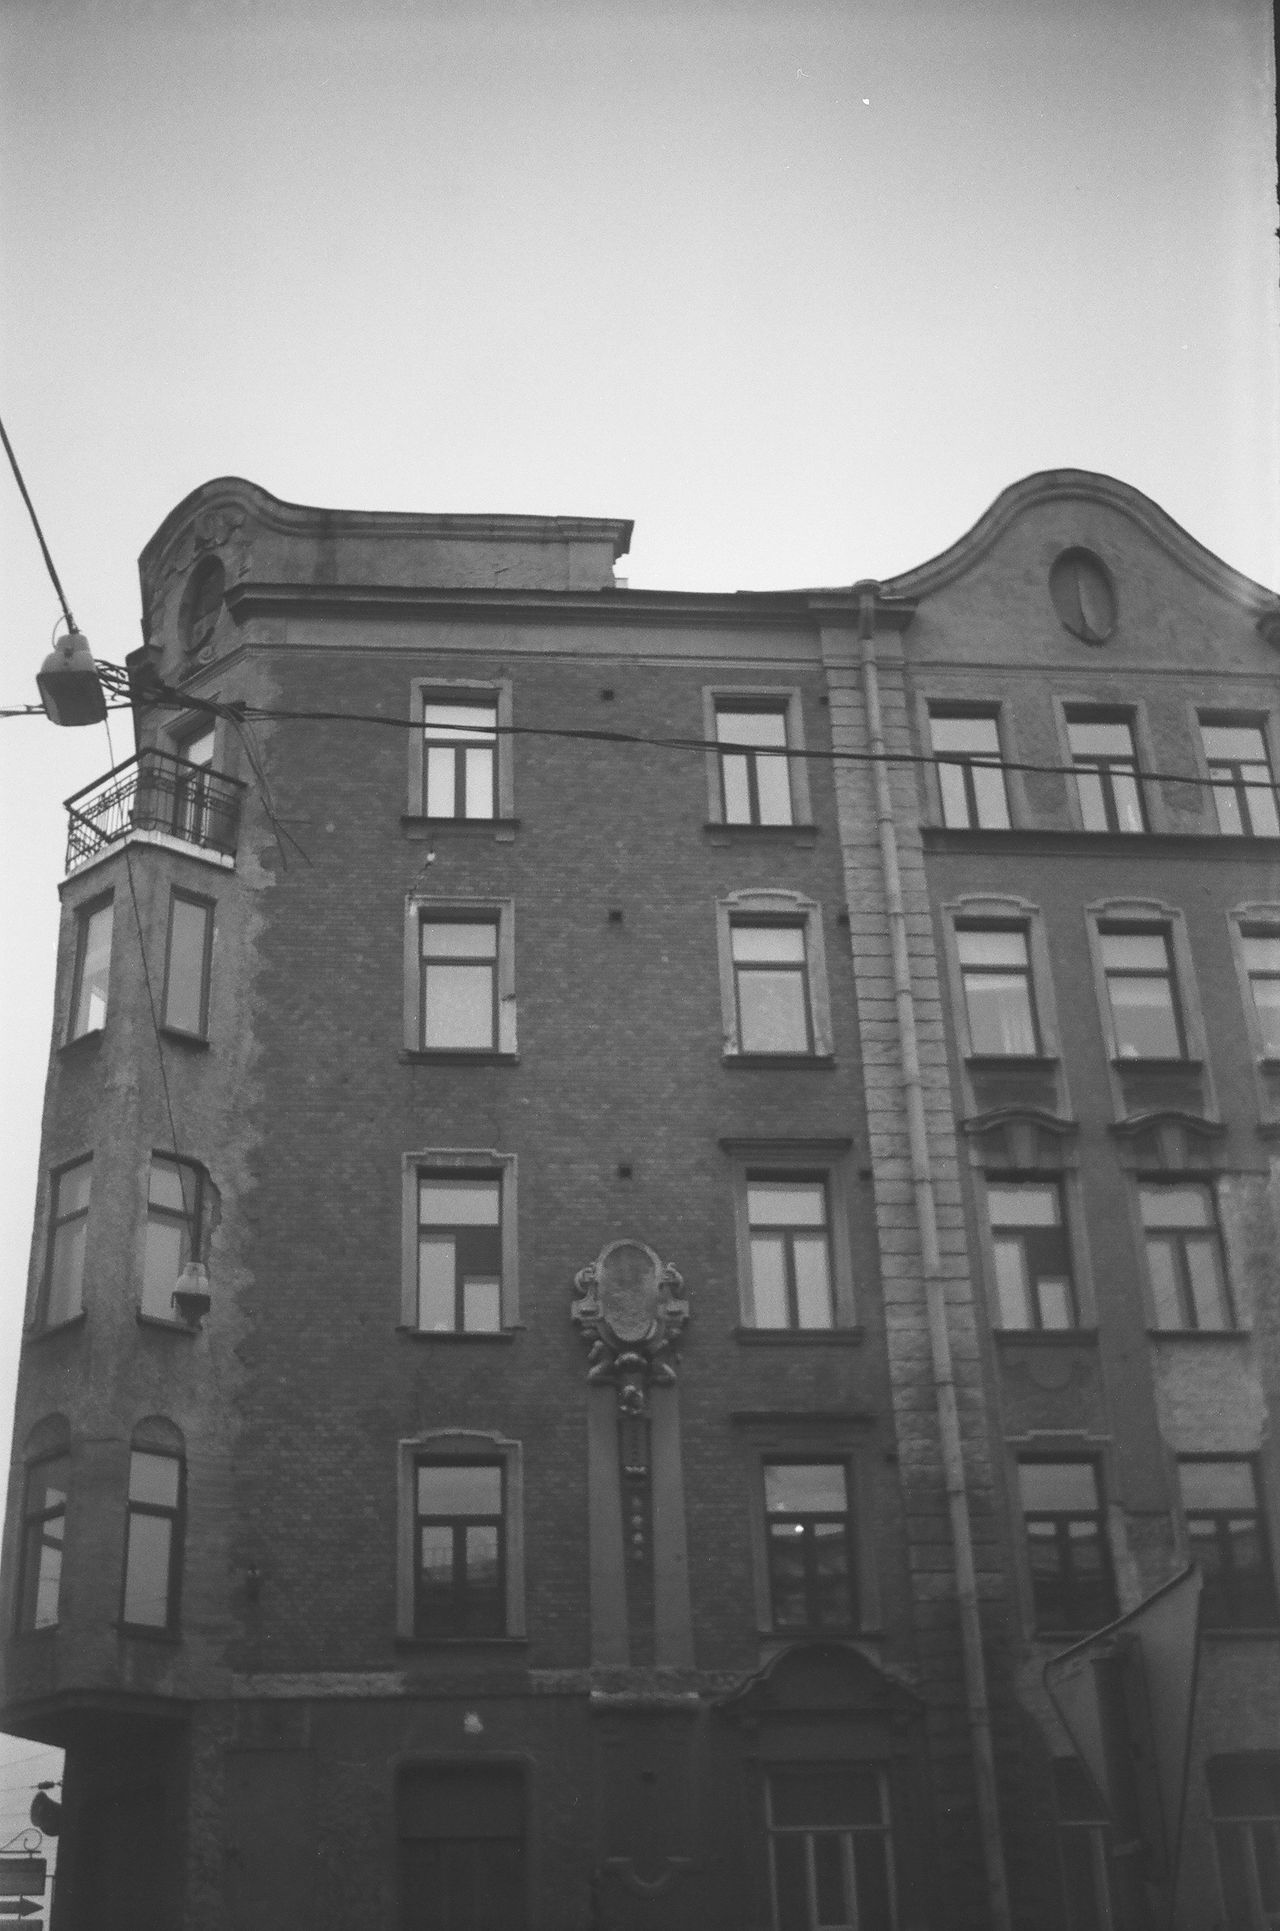 Built Structure Architecture Building Exterior Window Streets Monochrome Photgraphy Saintpetersburg FiftyShadesOfGrey Blackandwhite Monochrome Doublecolors 50shadesofgrey Facades Black And White Grayscale Bandw Slide Anticolors Fiftyshades Shadow No People Cable Tower Façade In Front Of